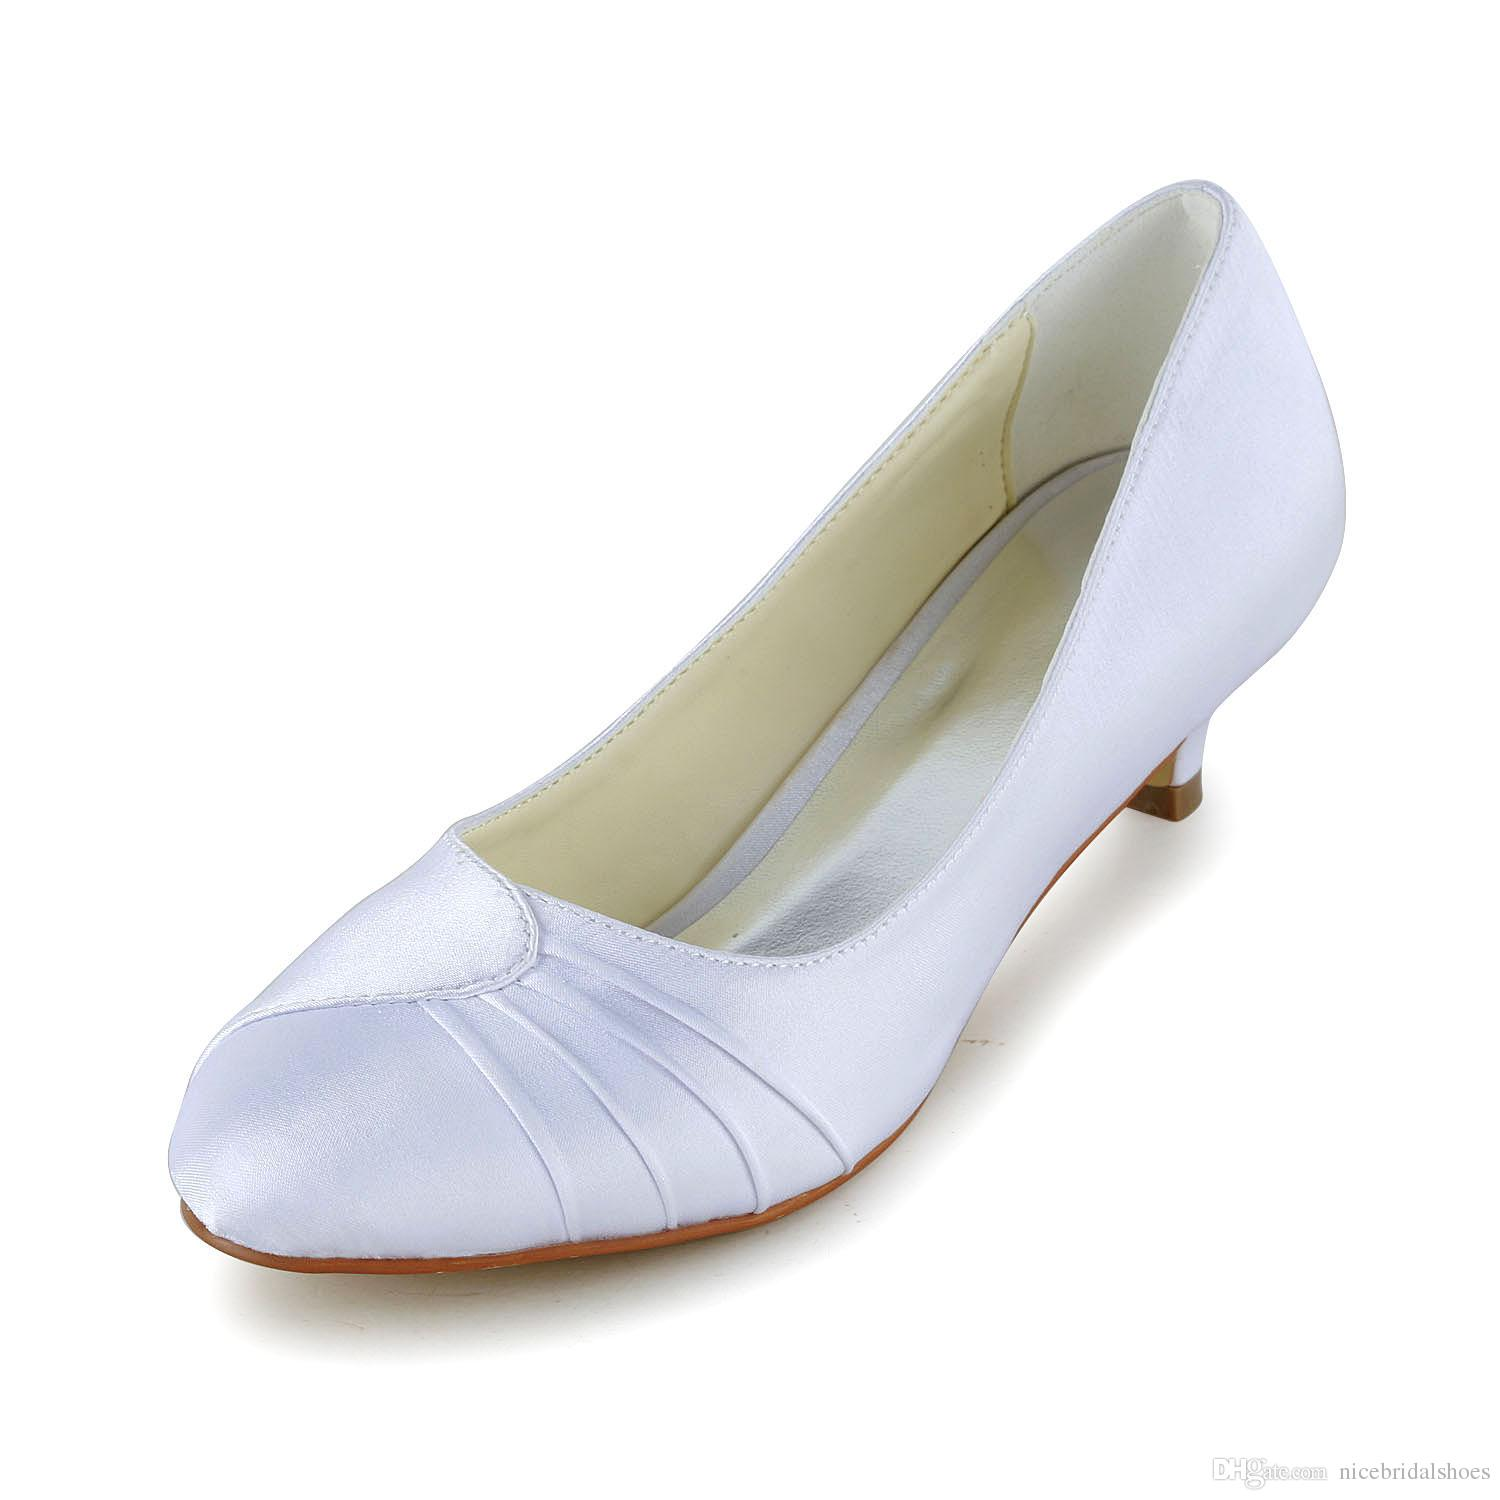 Little Heel Round Toe Wedding Dress Shoe Bridal Shoes Handmade For From Size35 41 Extra Wide Gina